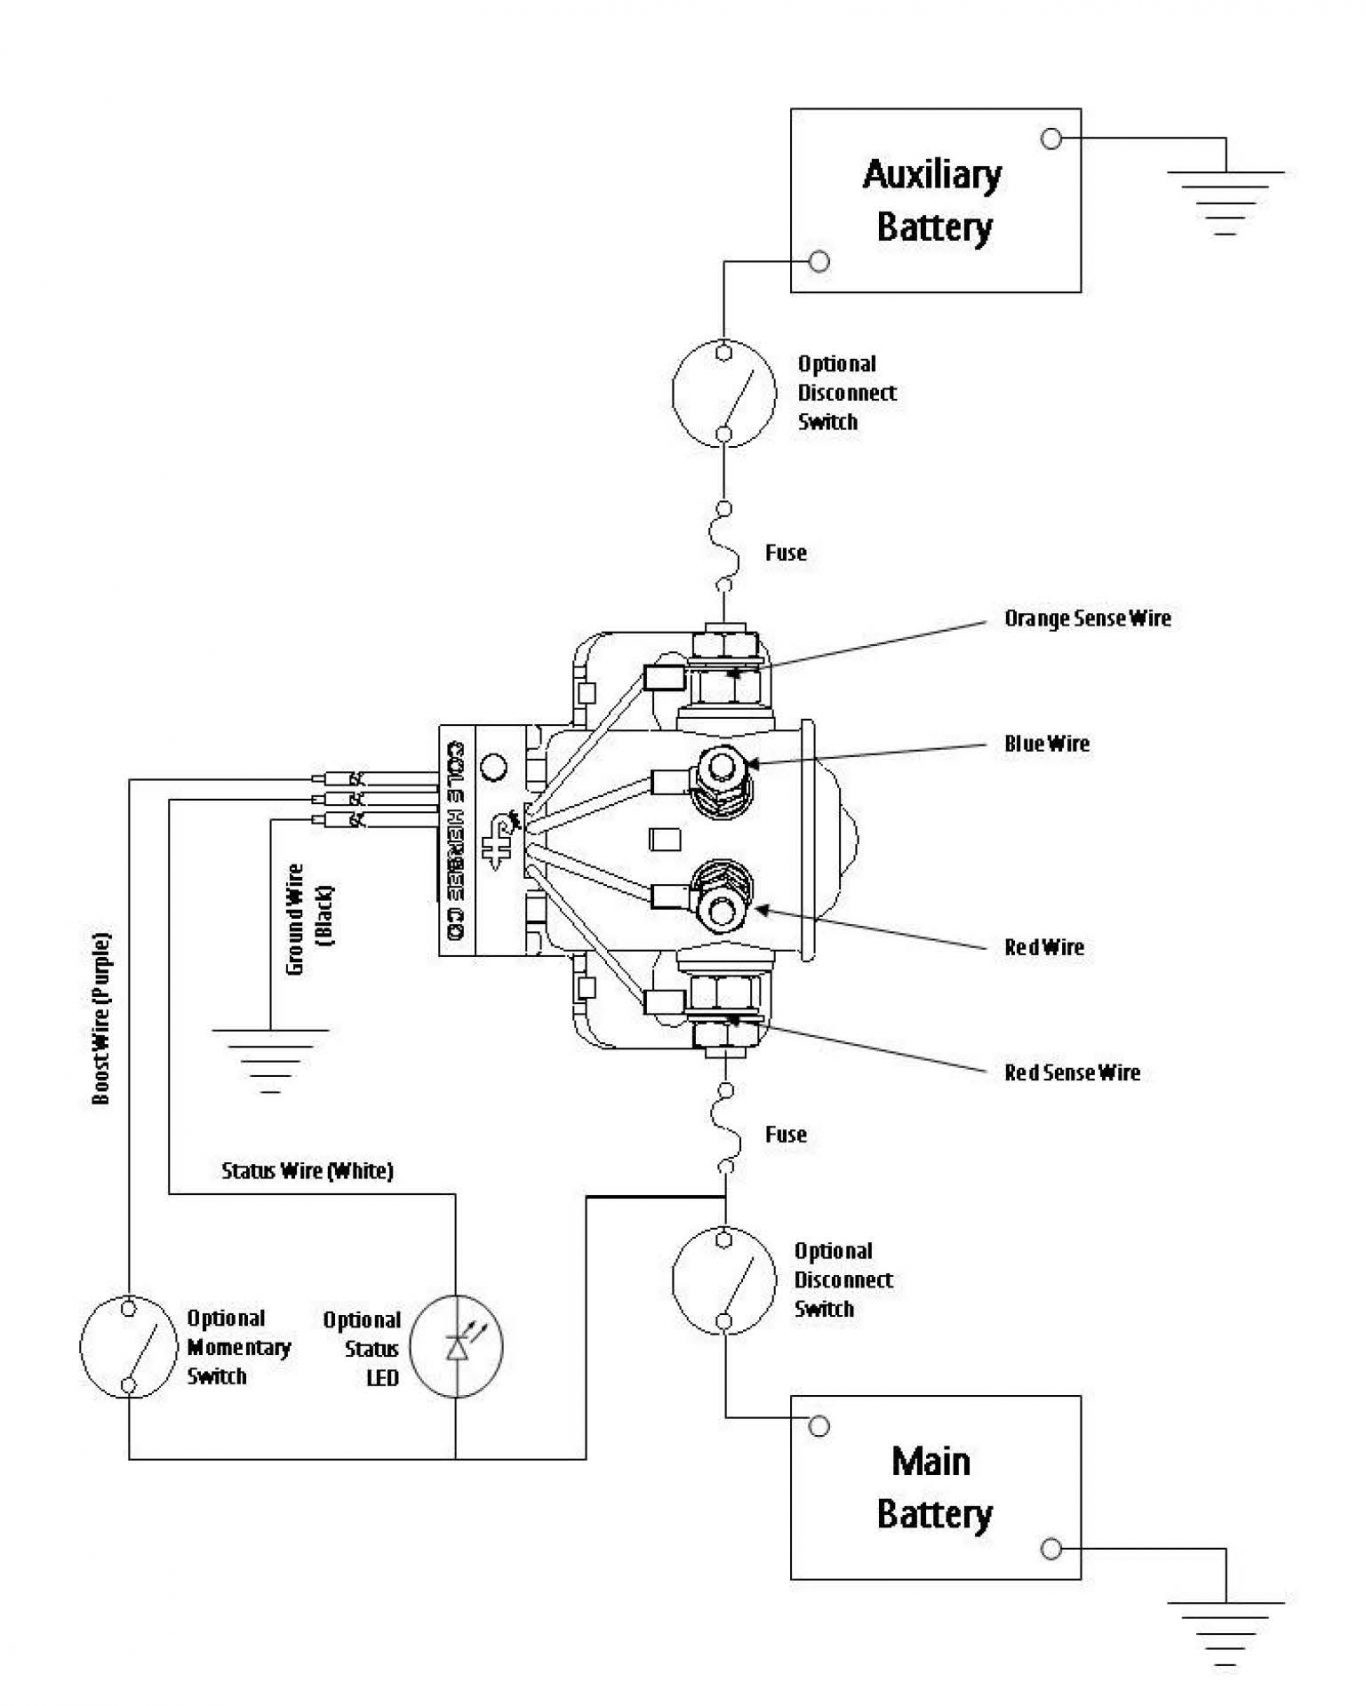 Warn 9000 Lb Winch Wiring Diagram from wholefoodsonabudget.com